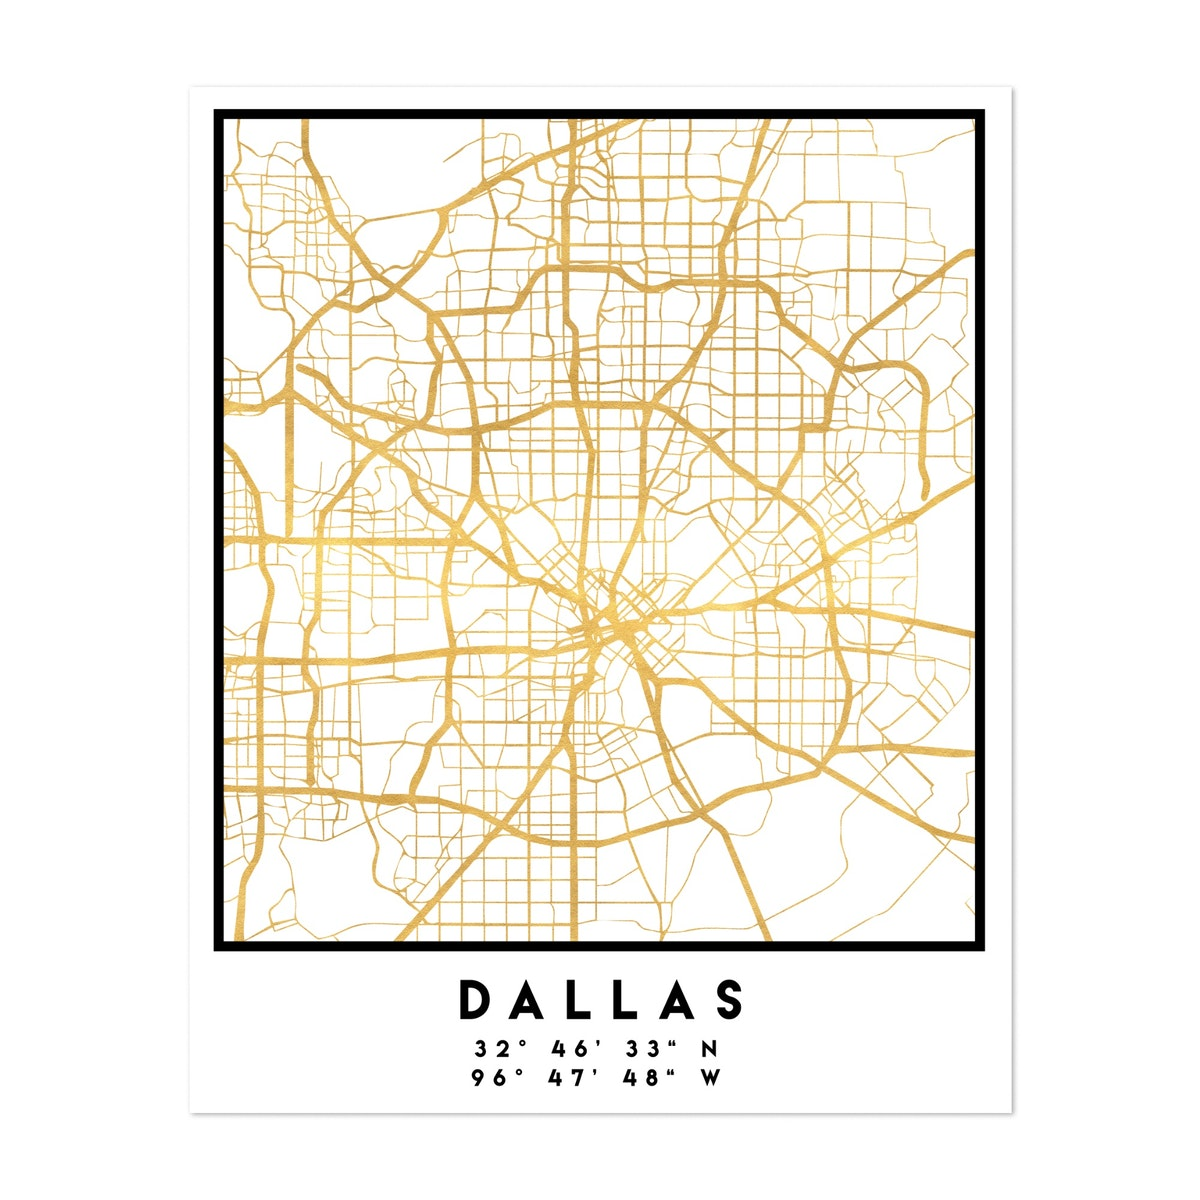 Dallas Street Map